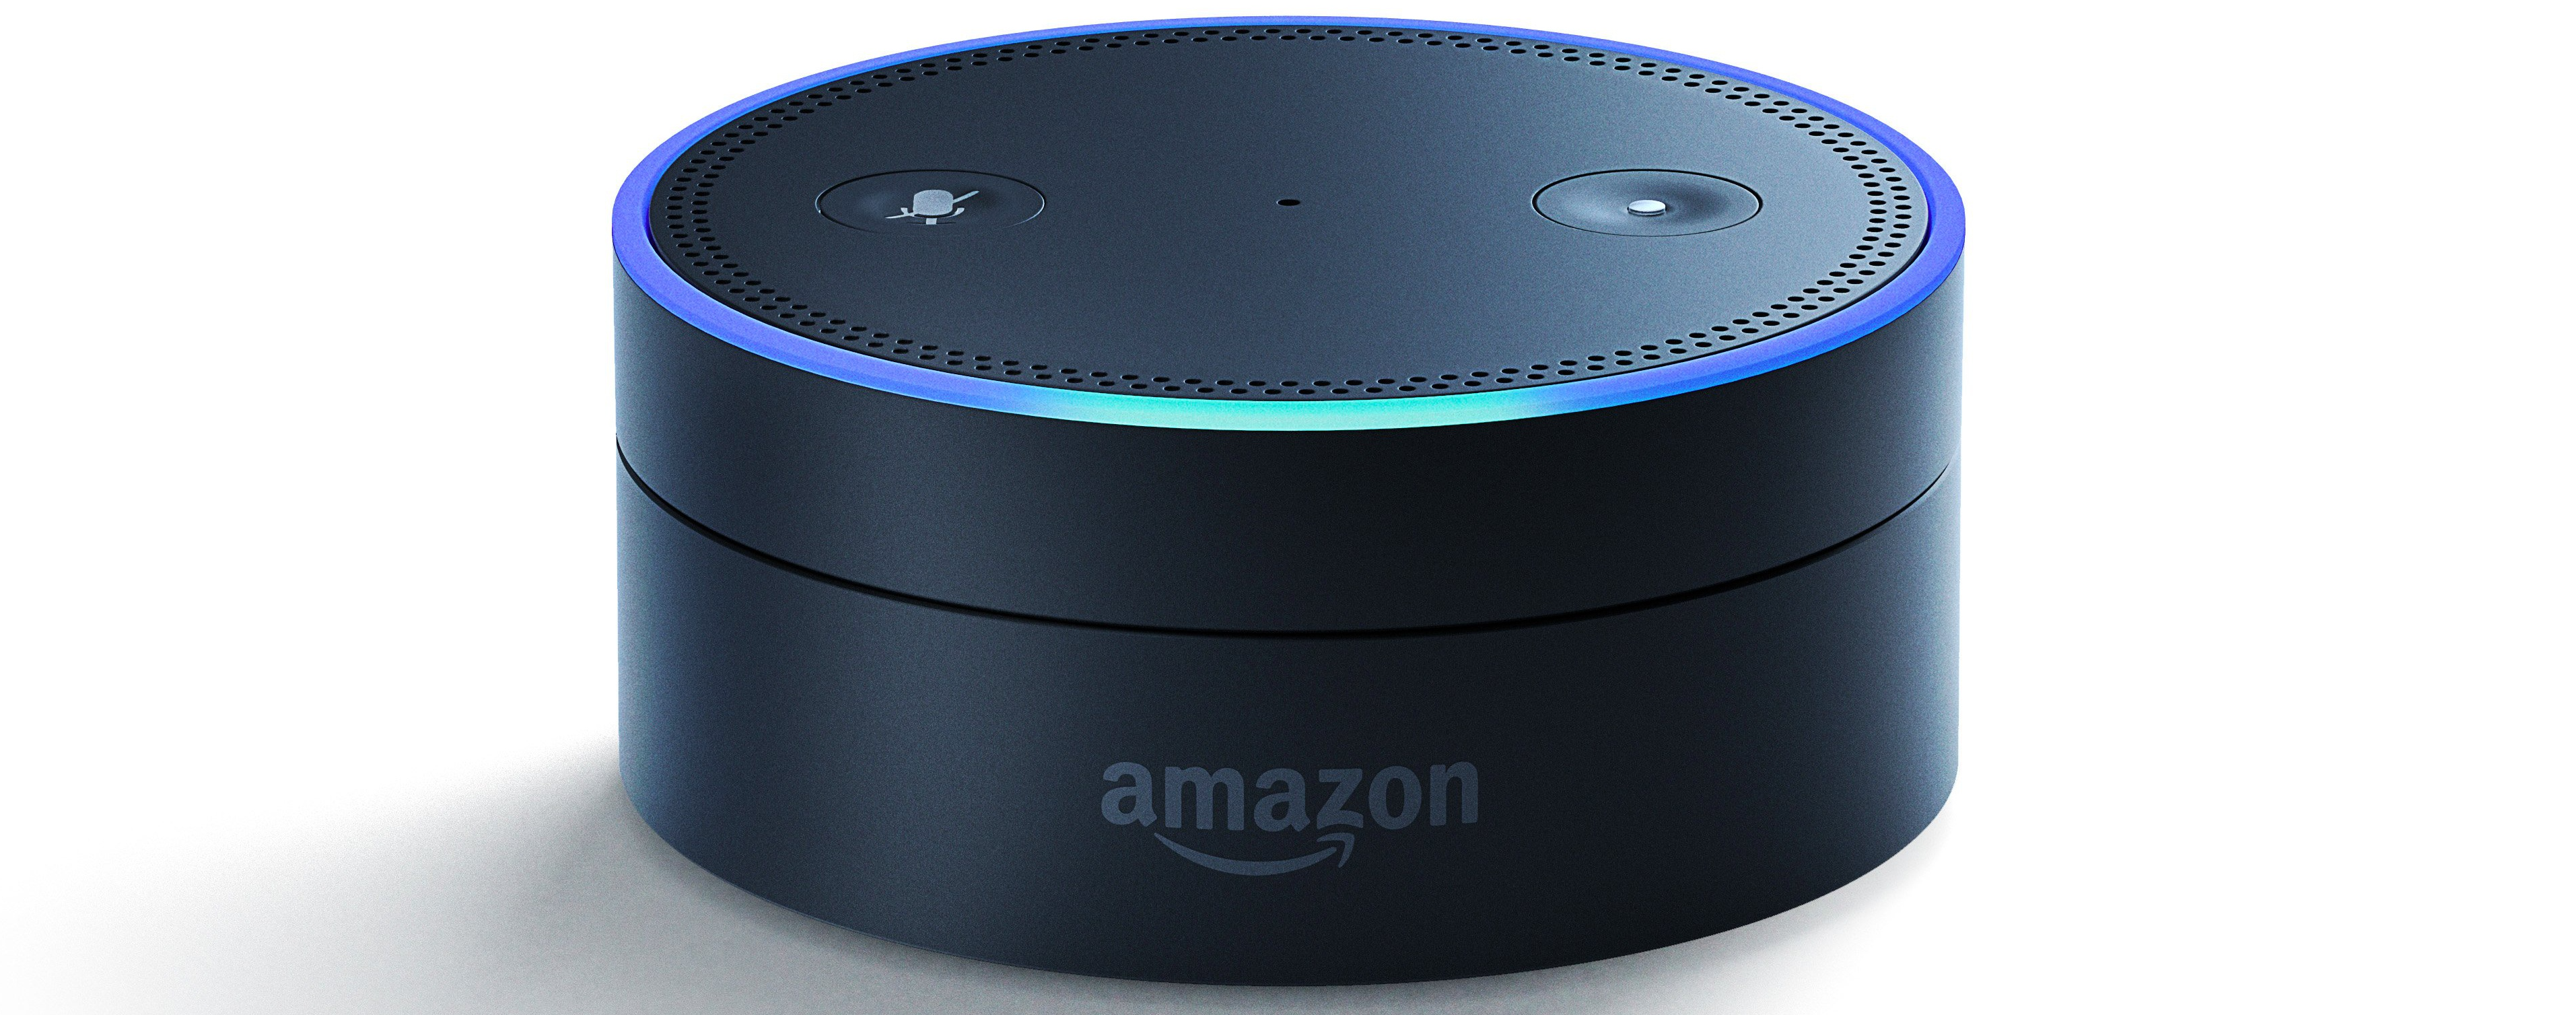 What (was?) missing from Amazon Echo? - Chatbots Life